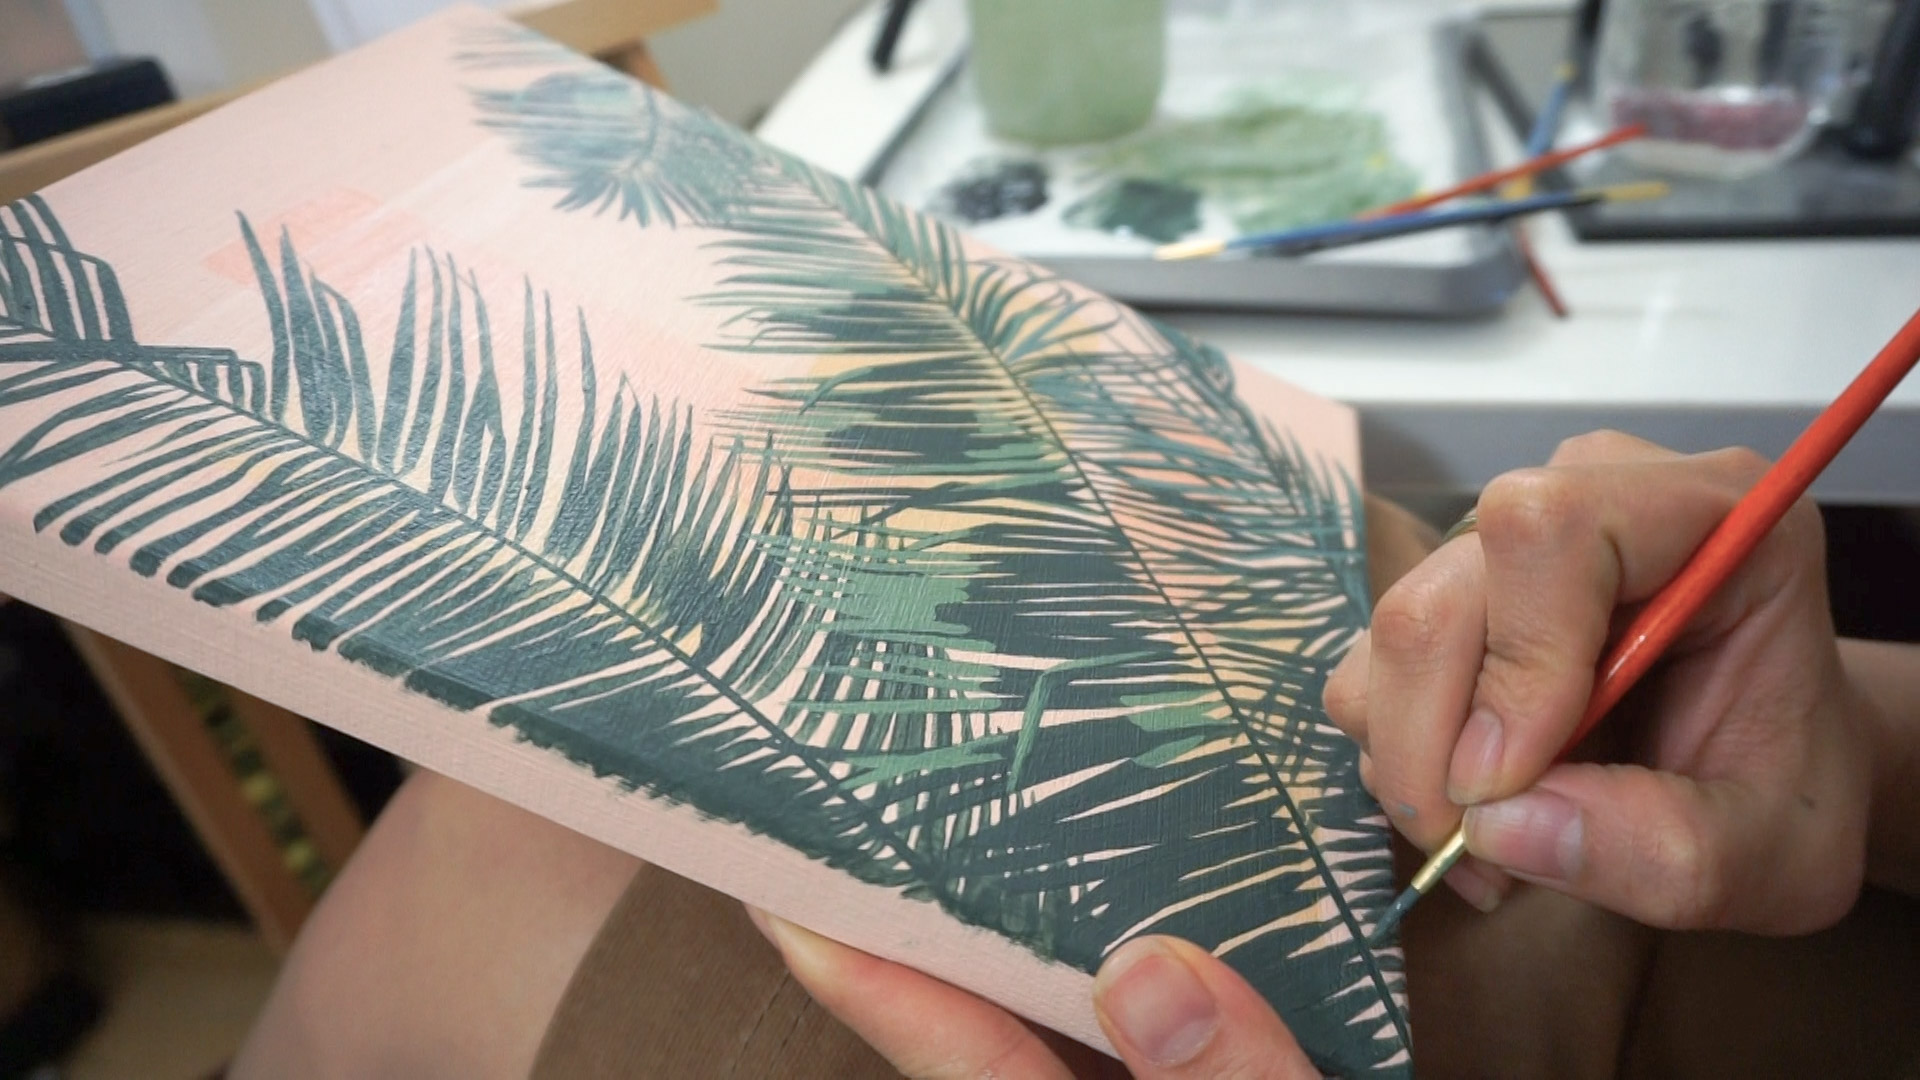 Kaiffeinated_PaintwithKai01_PalmTreePainting_06.jpg